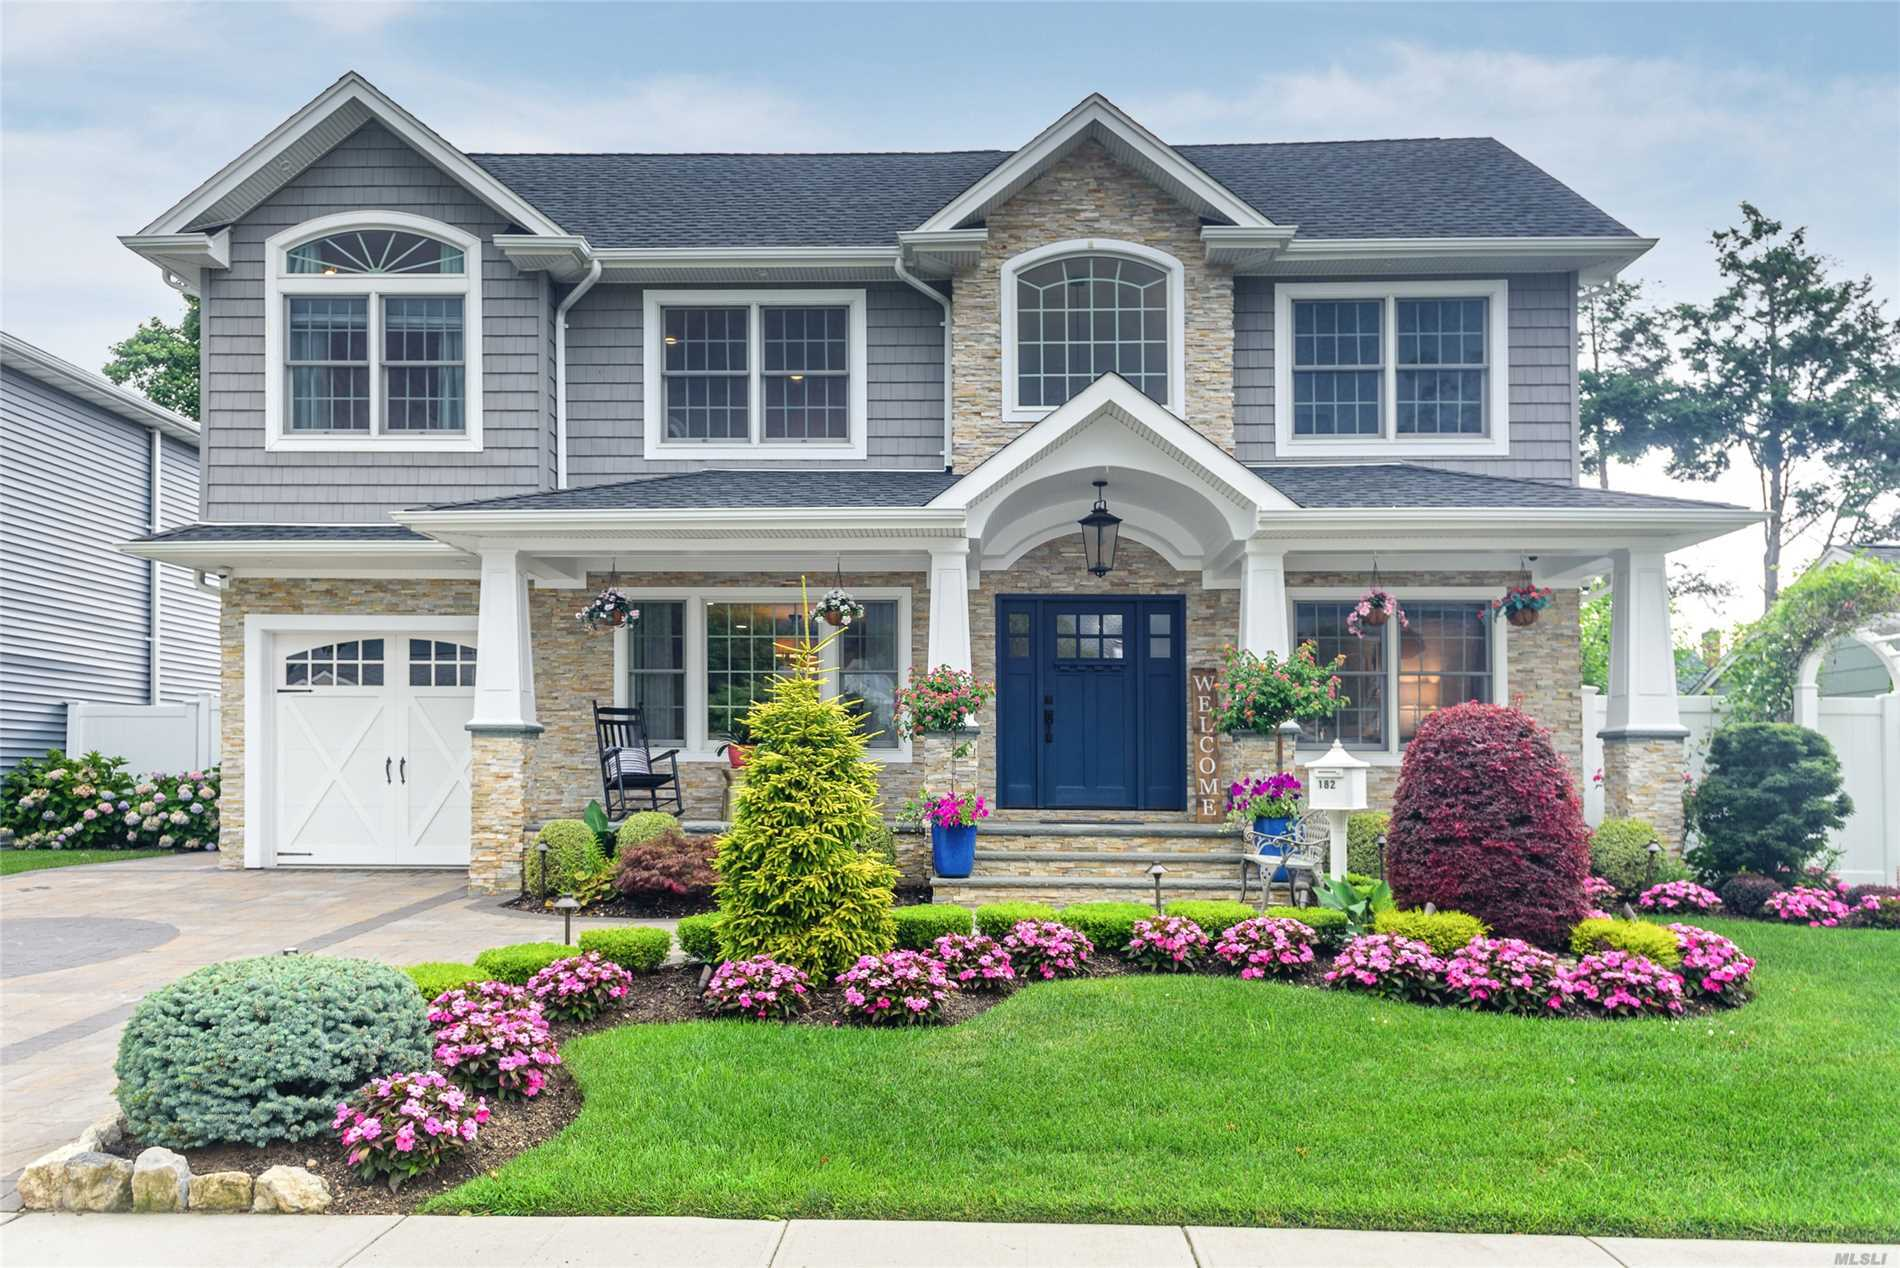 182 Margaret Dr - East Meadow, New York